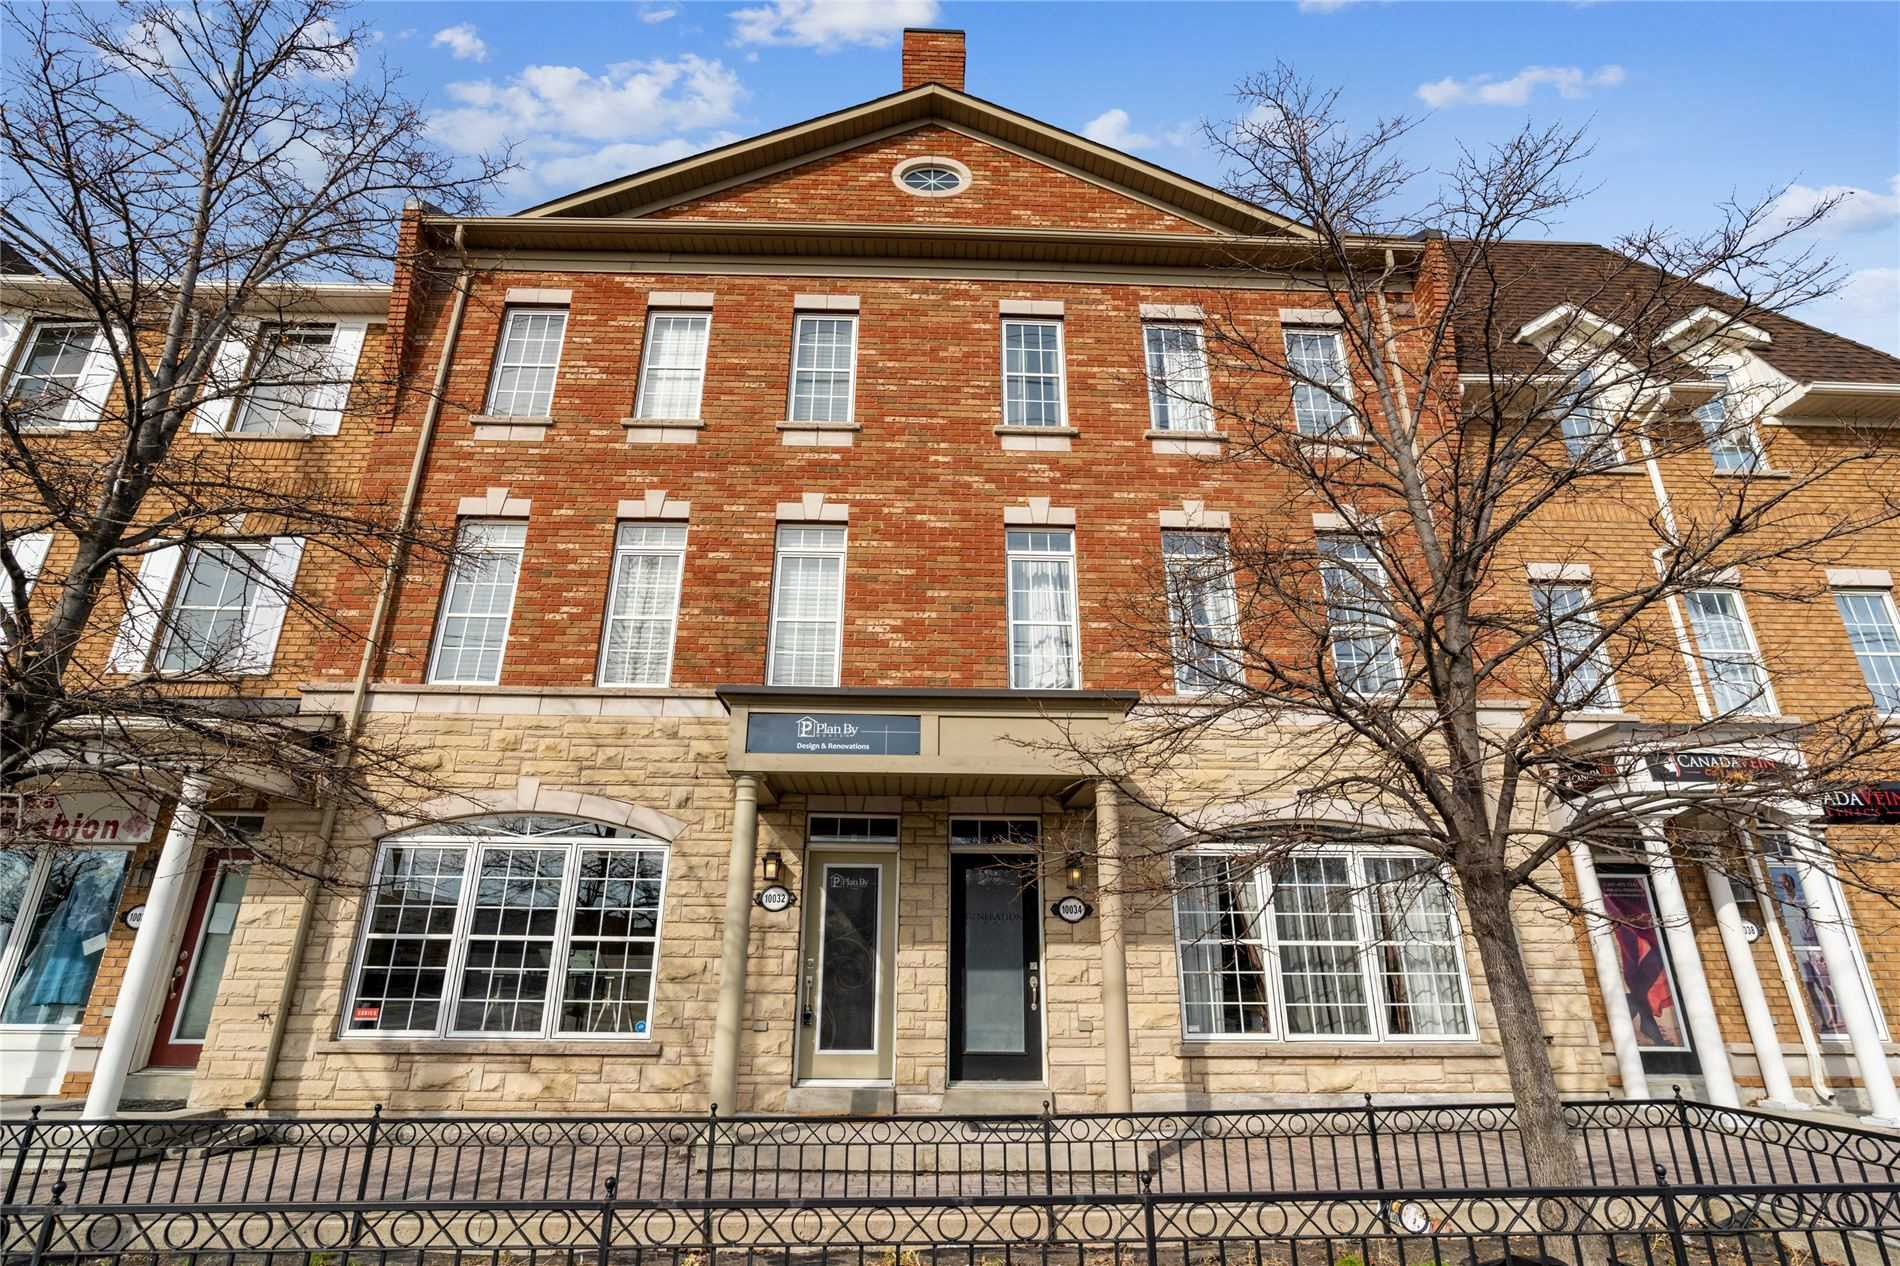 Beautiful & Ultra Spacious 3 Bdrm Townhouse W/Street Front Office/Retail!! Amazing Live/Work Opportunity, Over 2,000 S/F, Open Concept Main Flr, Kitchen W/Centre Island, Granite Counters & Stainless Steel Appliances, Huge Family Room, Large Master Bdrm W/Ensuite, 2-Car Garage, Private 20' X 20' Terrace & Much More! Steps To Go & Close To Shopping & Amenities!!!